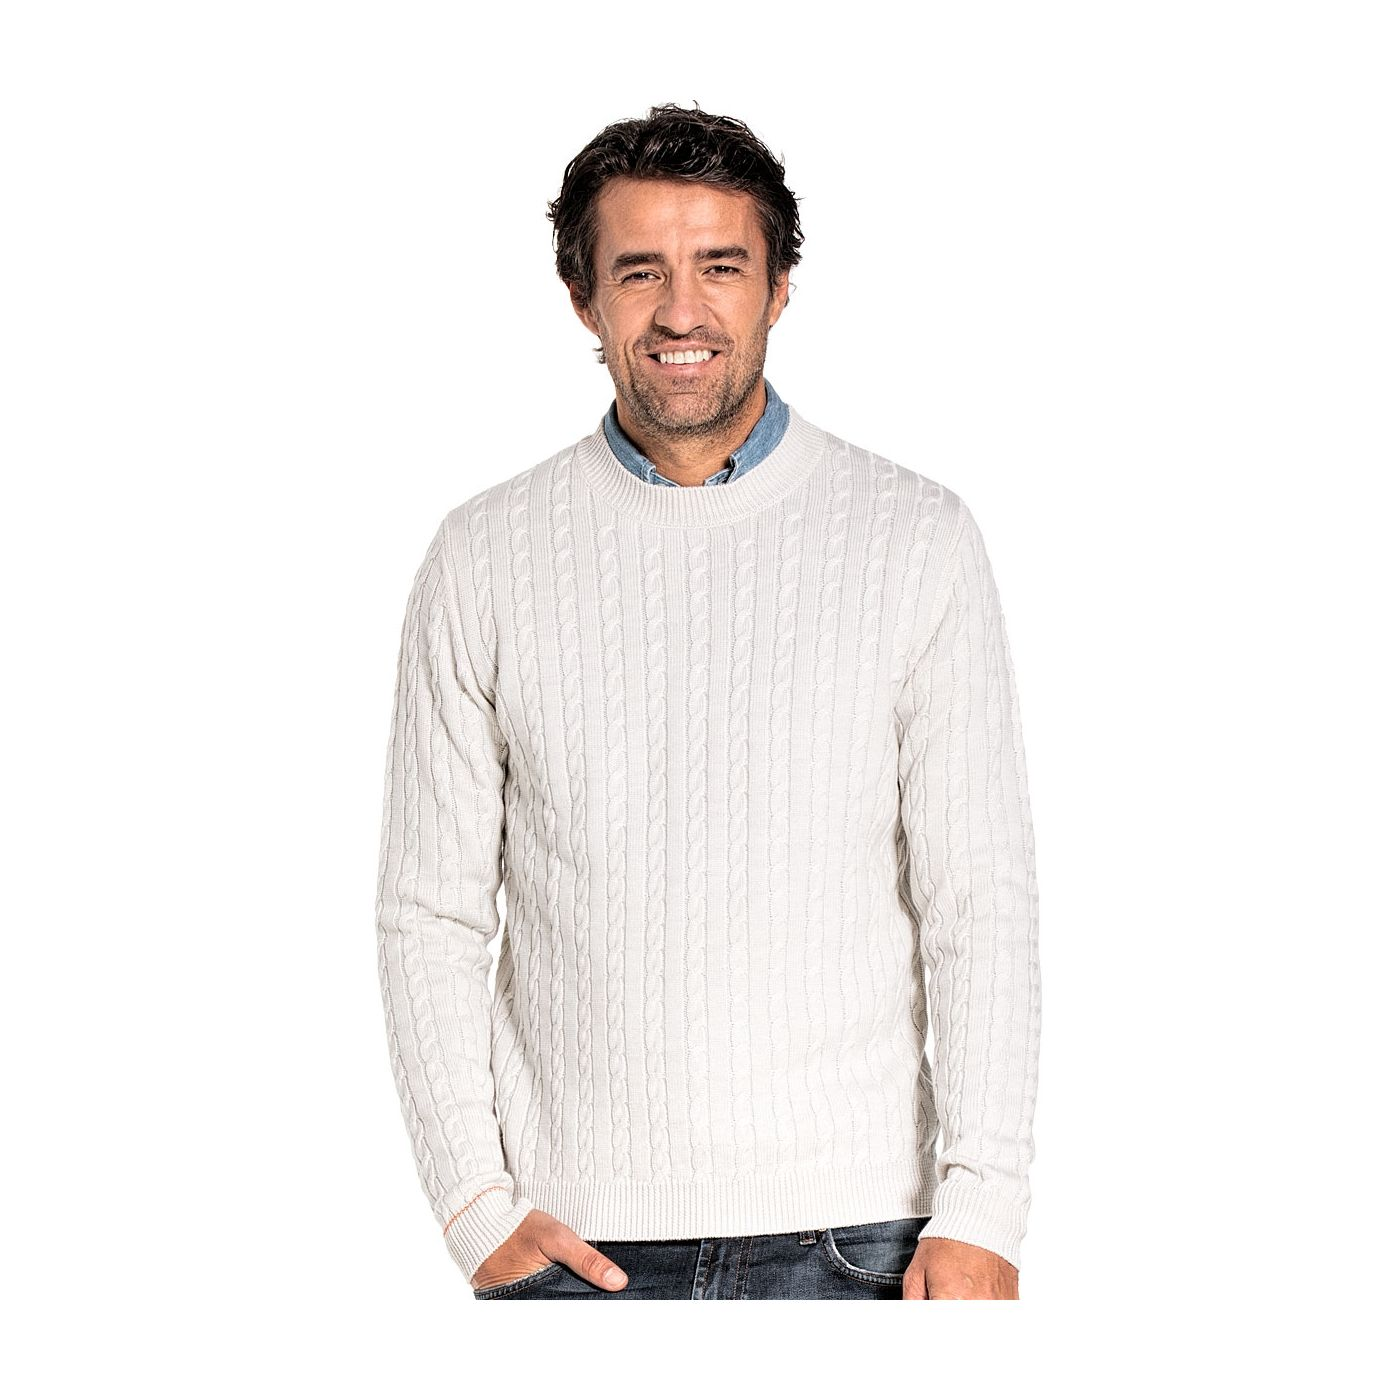 Cable knit sweater for men made of Merino wool in White